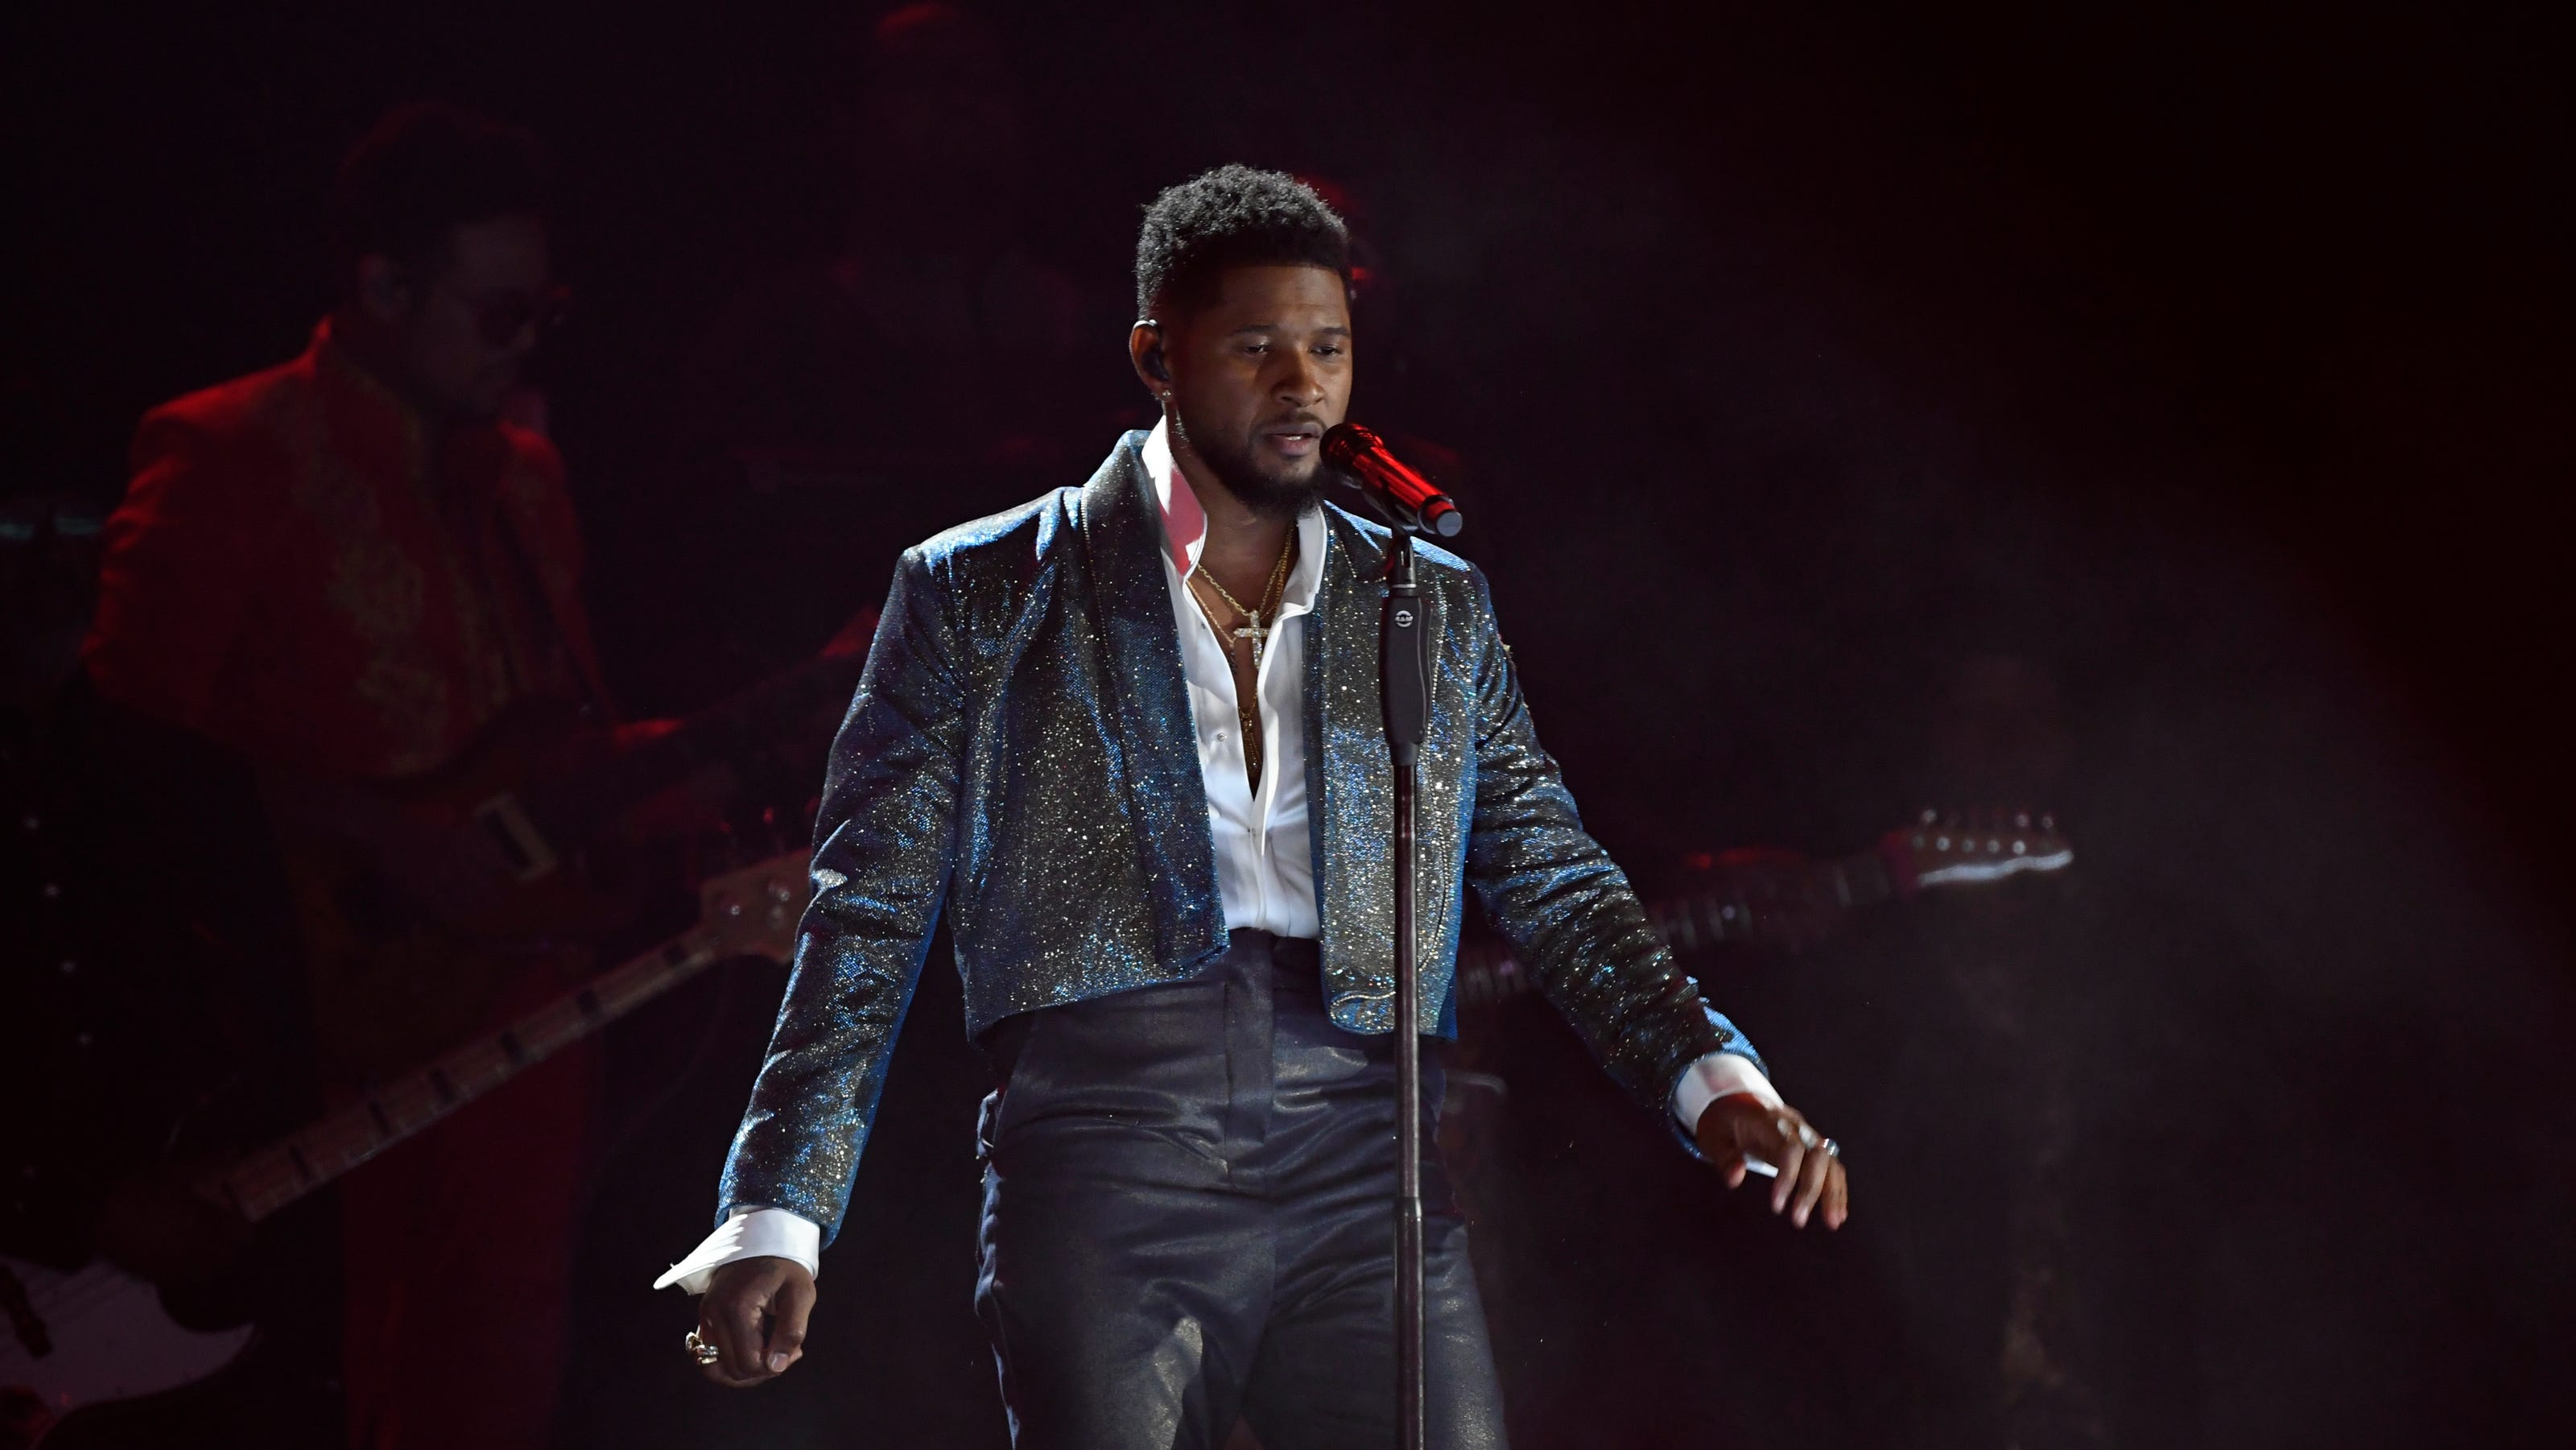 Grammys 2020: Mixed reviews for Prince tribute from Usher, FKA twigs